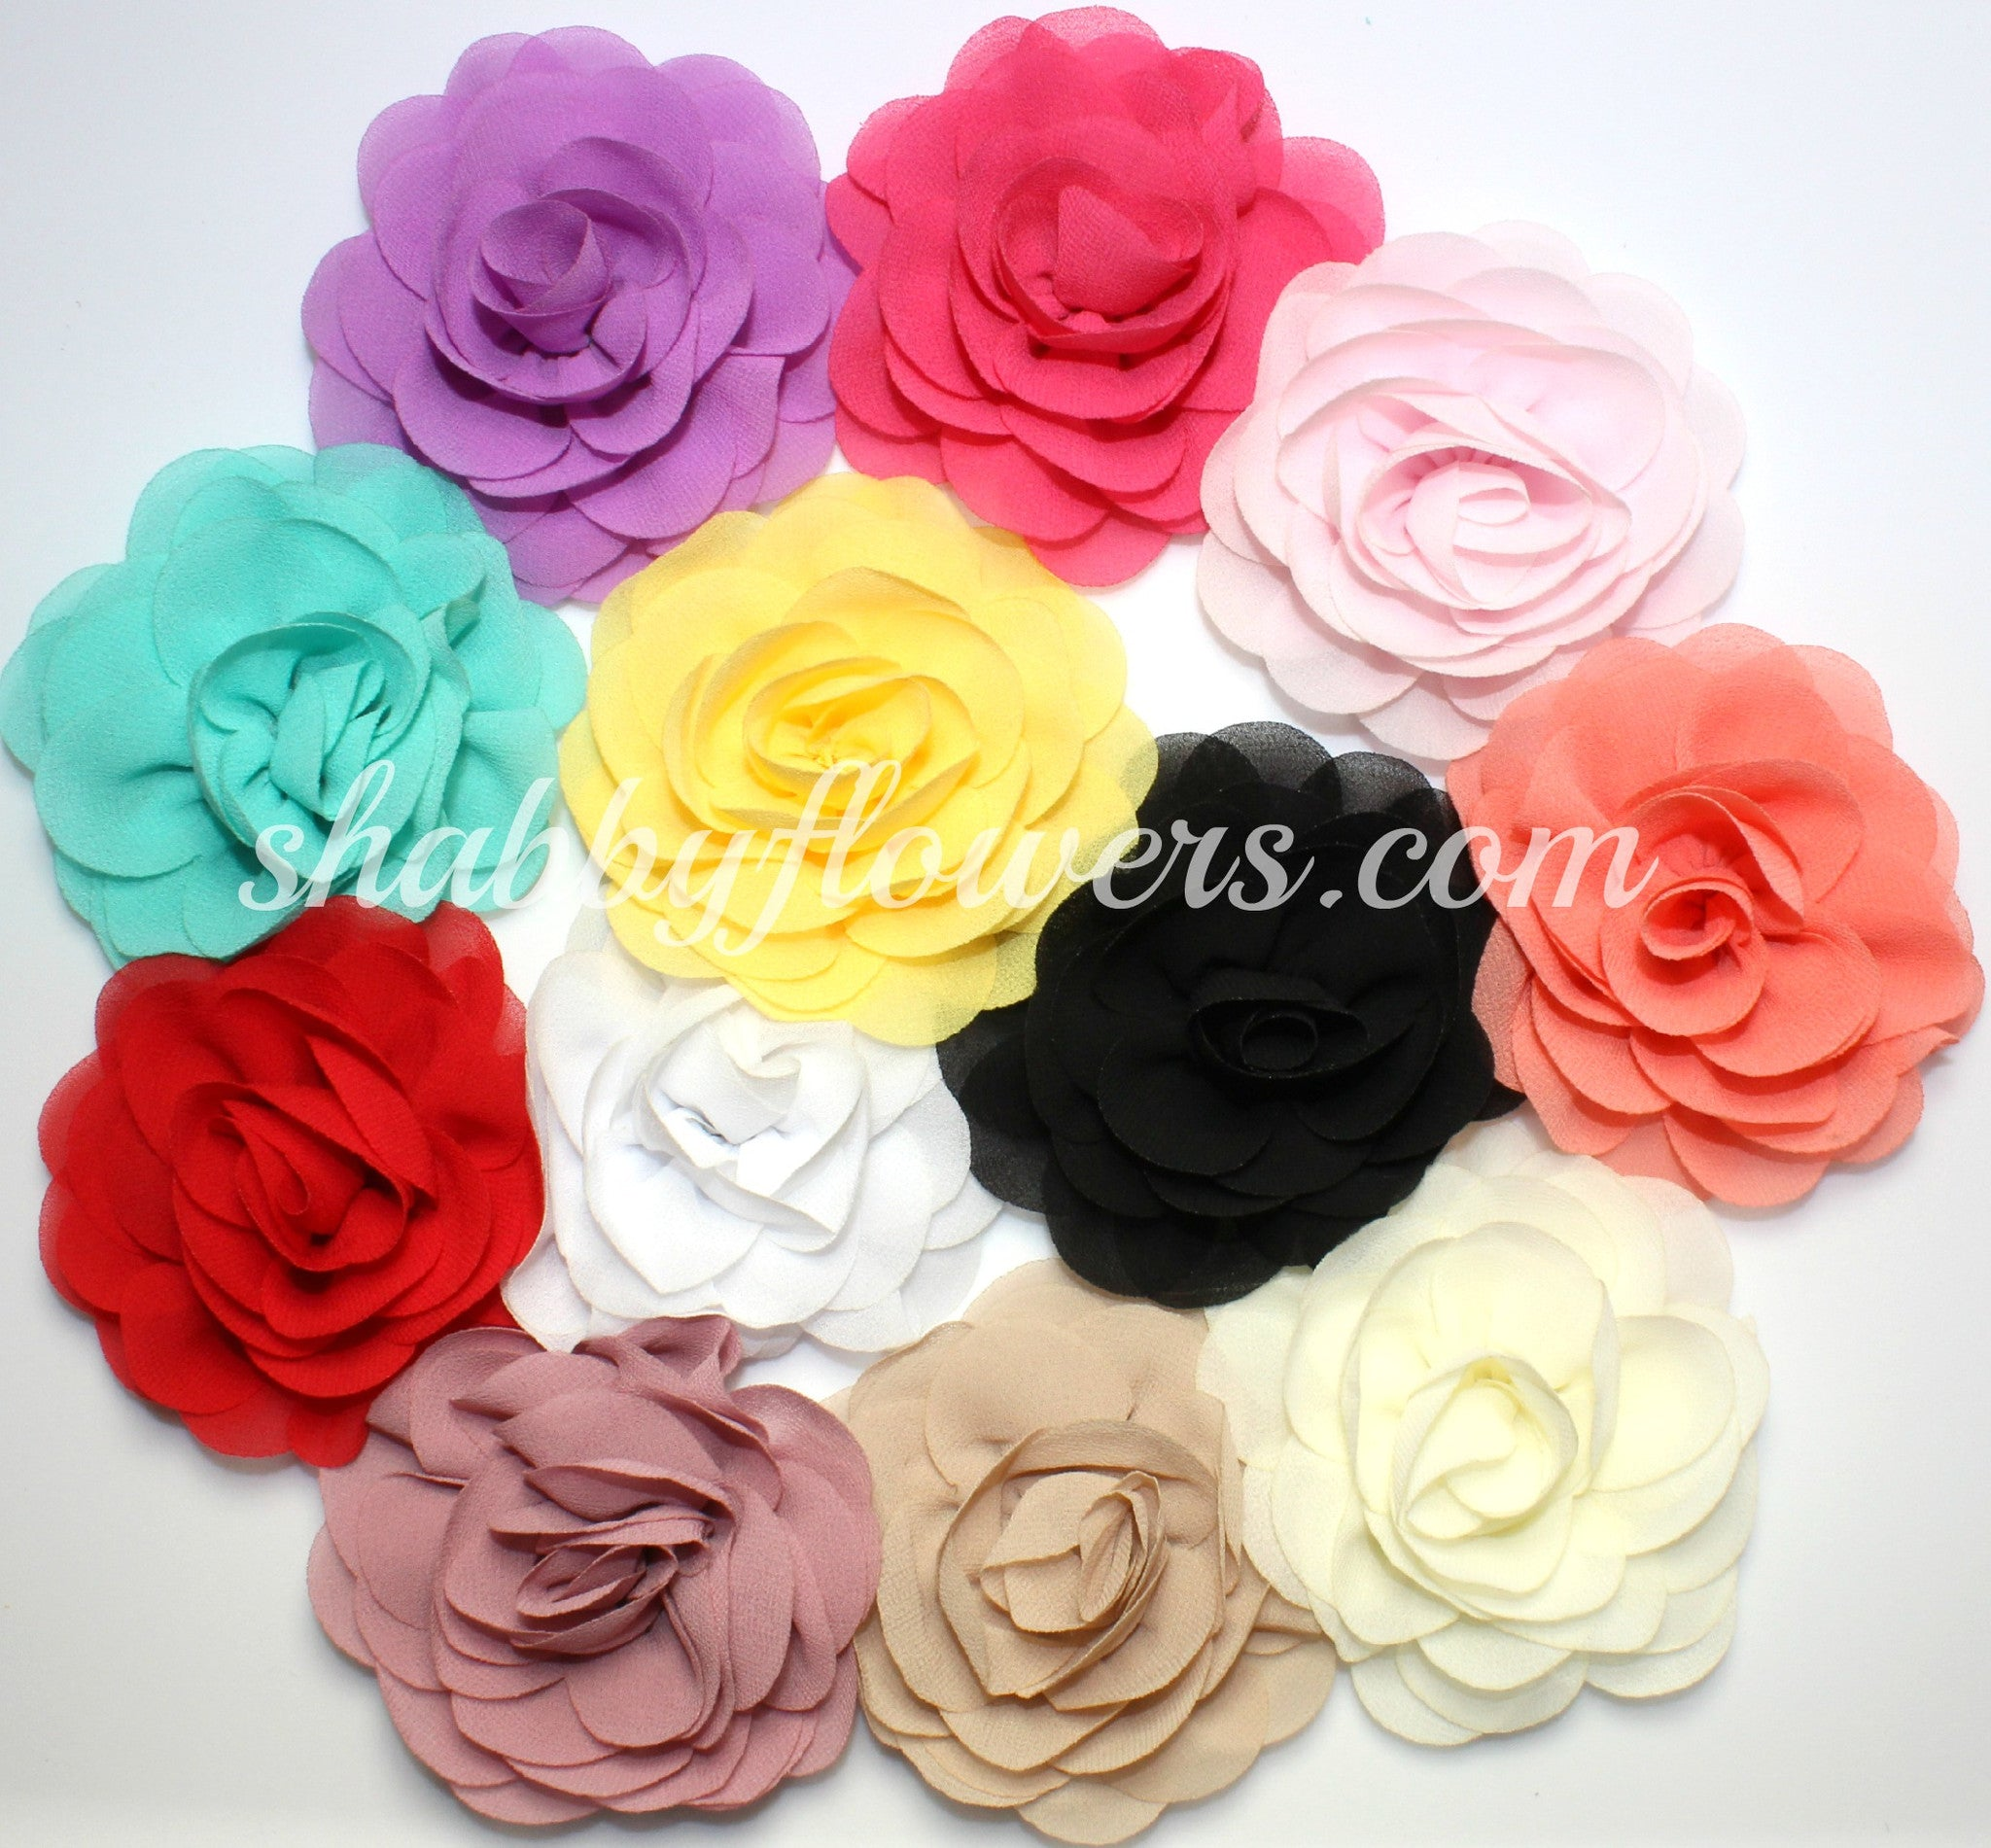 Rose Flower Pack of 12 - shabbyflowers.com